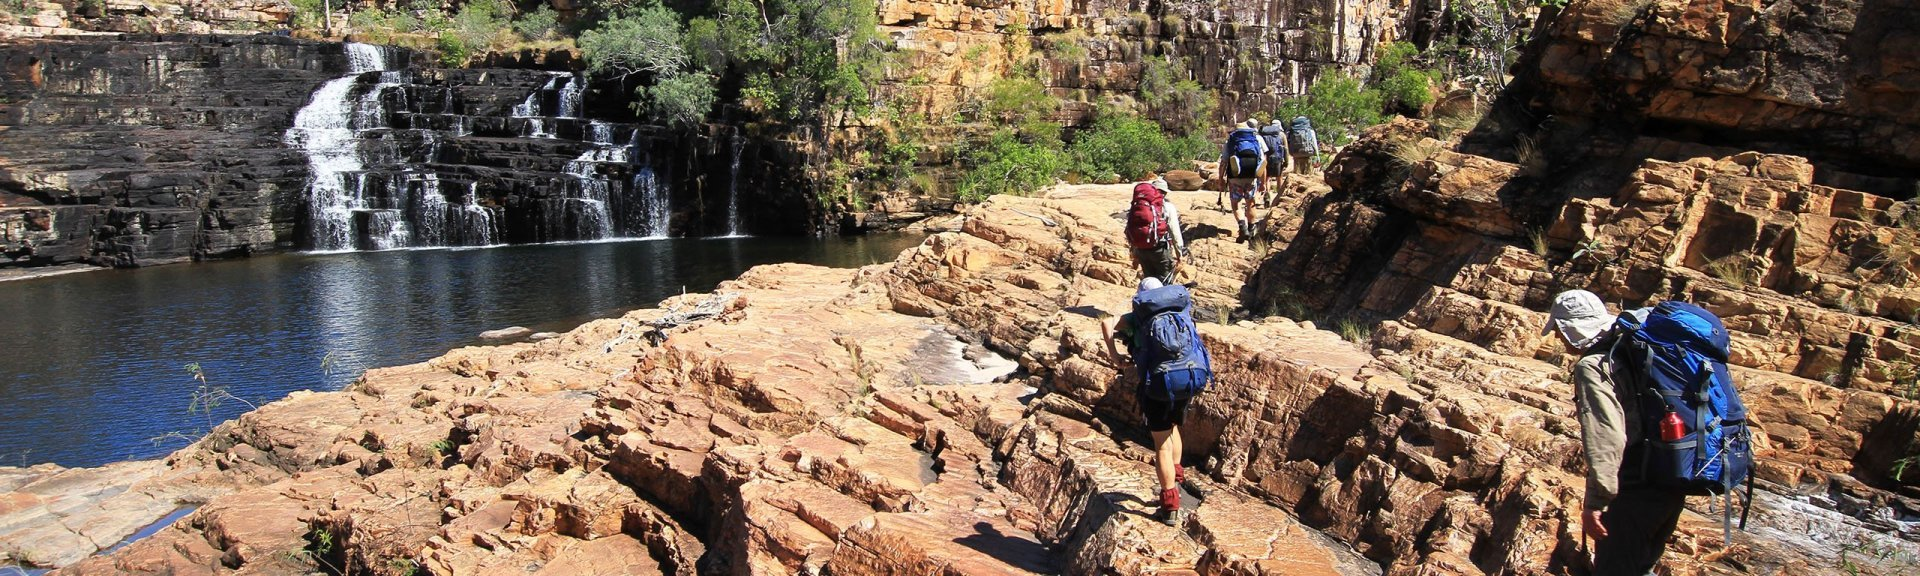 Trekking in Kakadu. Photo by Trek Tours.